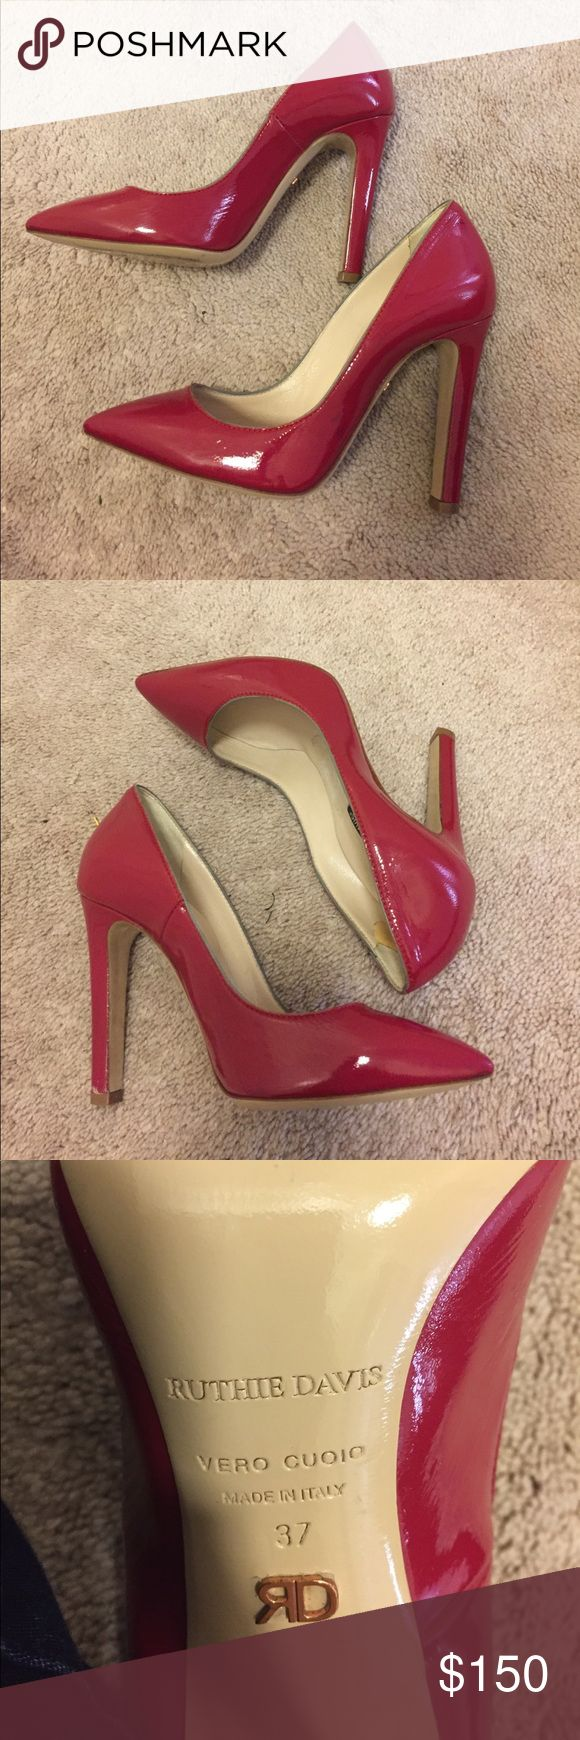 Ruthie Davis heels Red patent leather Ruthie Davis high heels.   Size 37,  but run small Ruthie Davis Shoes Heels